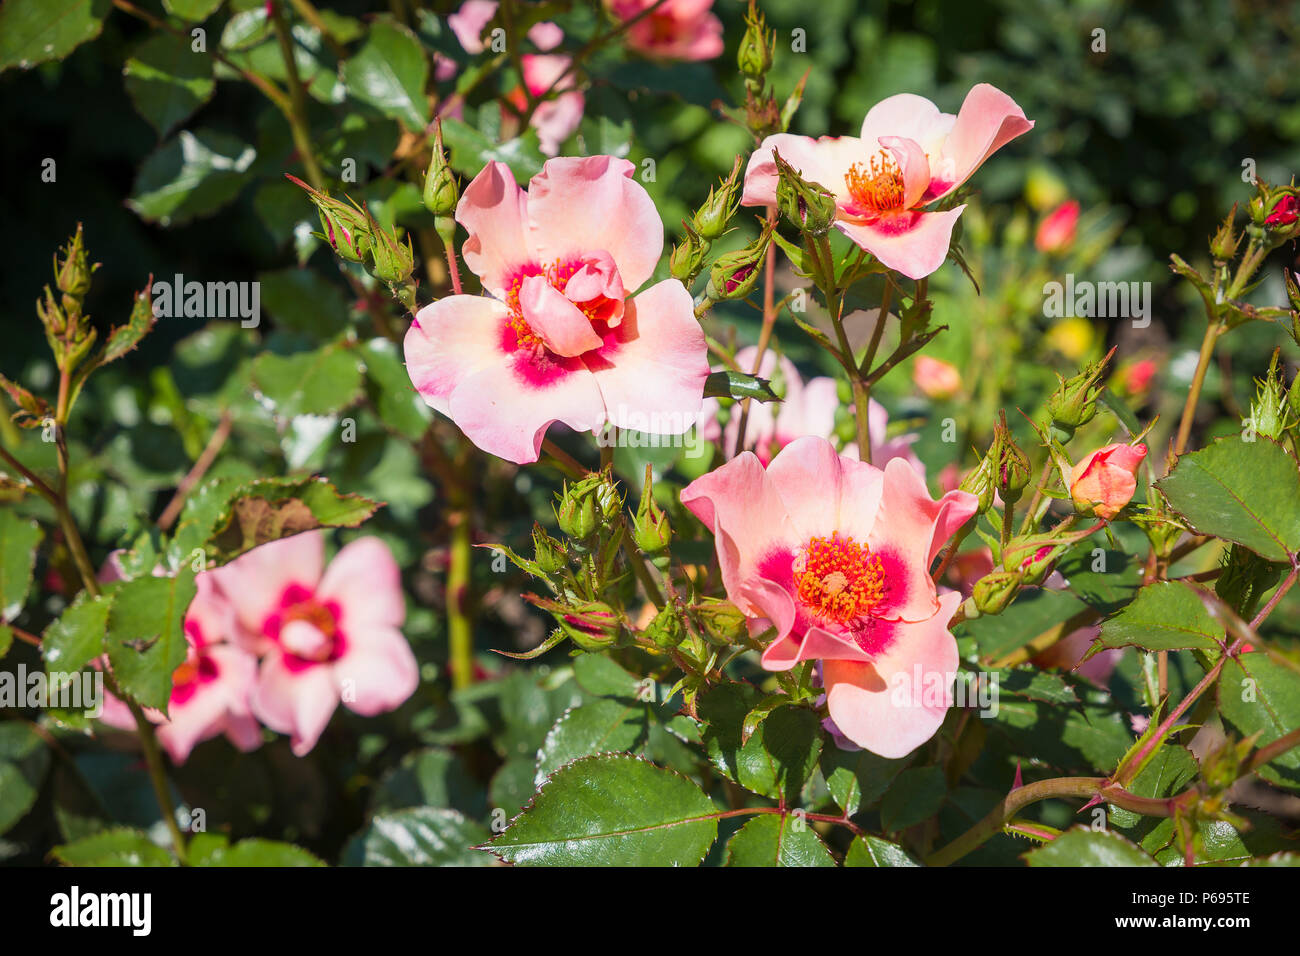 Rosa For Your eyes Only flowering in an English garden in June - Stock Image